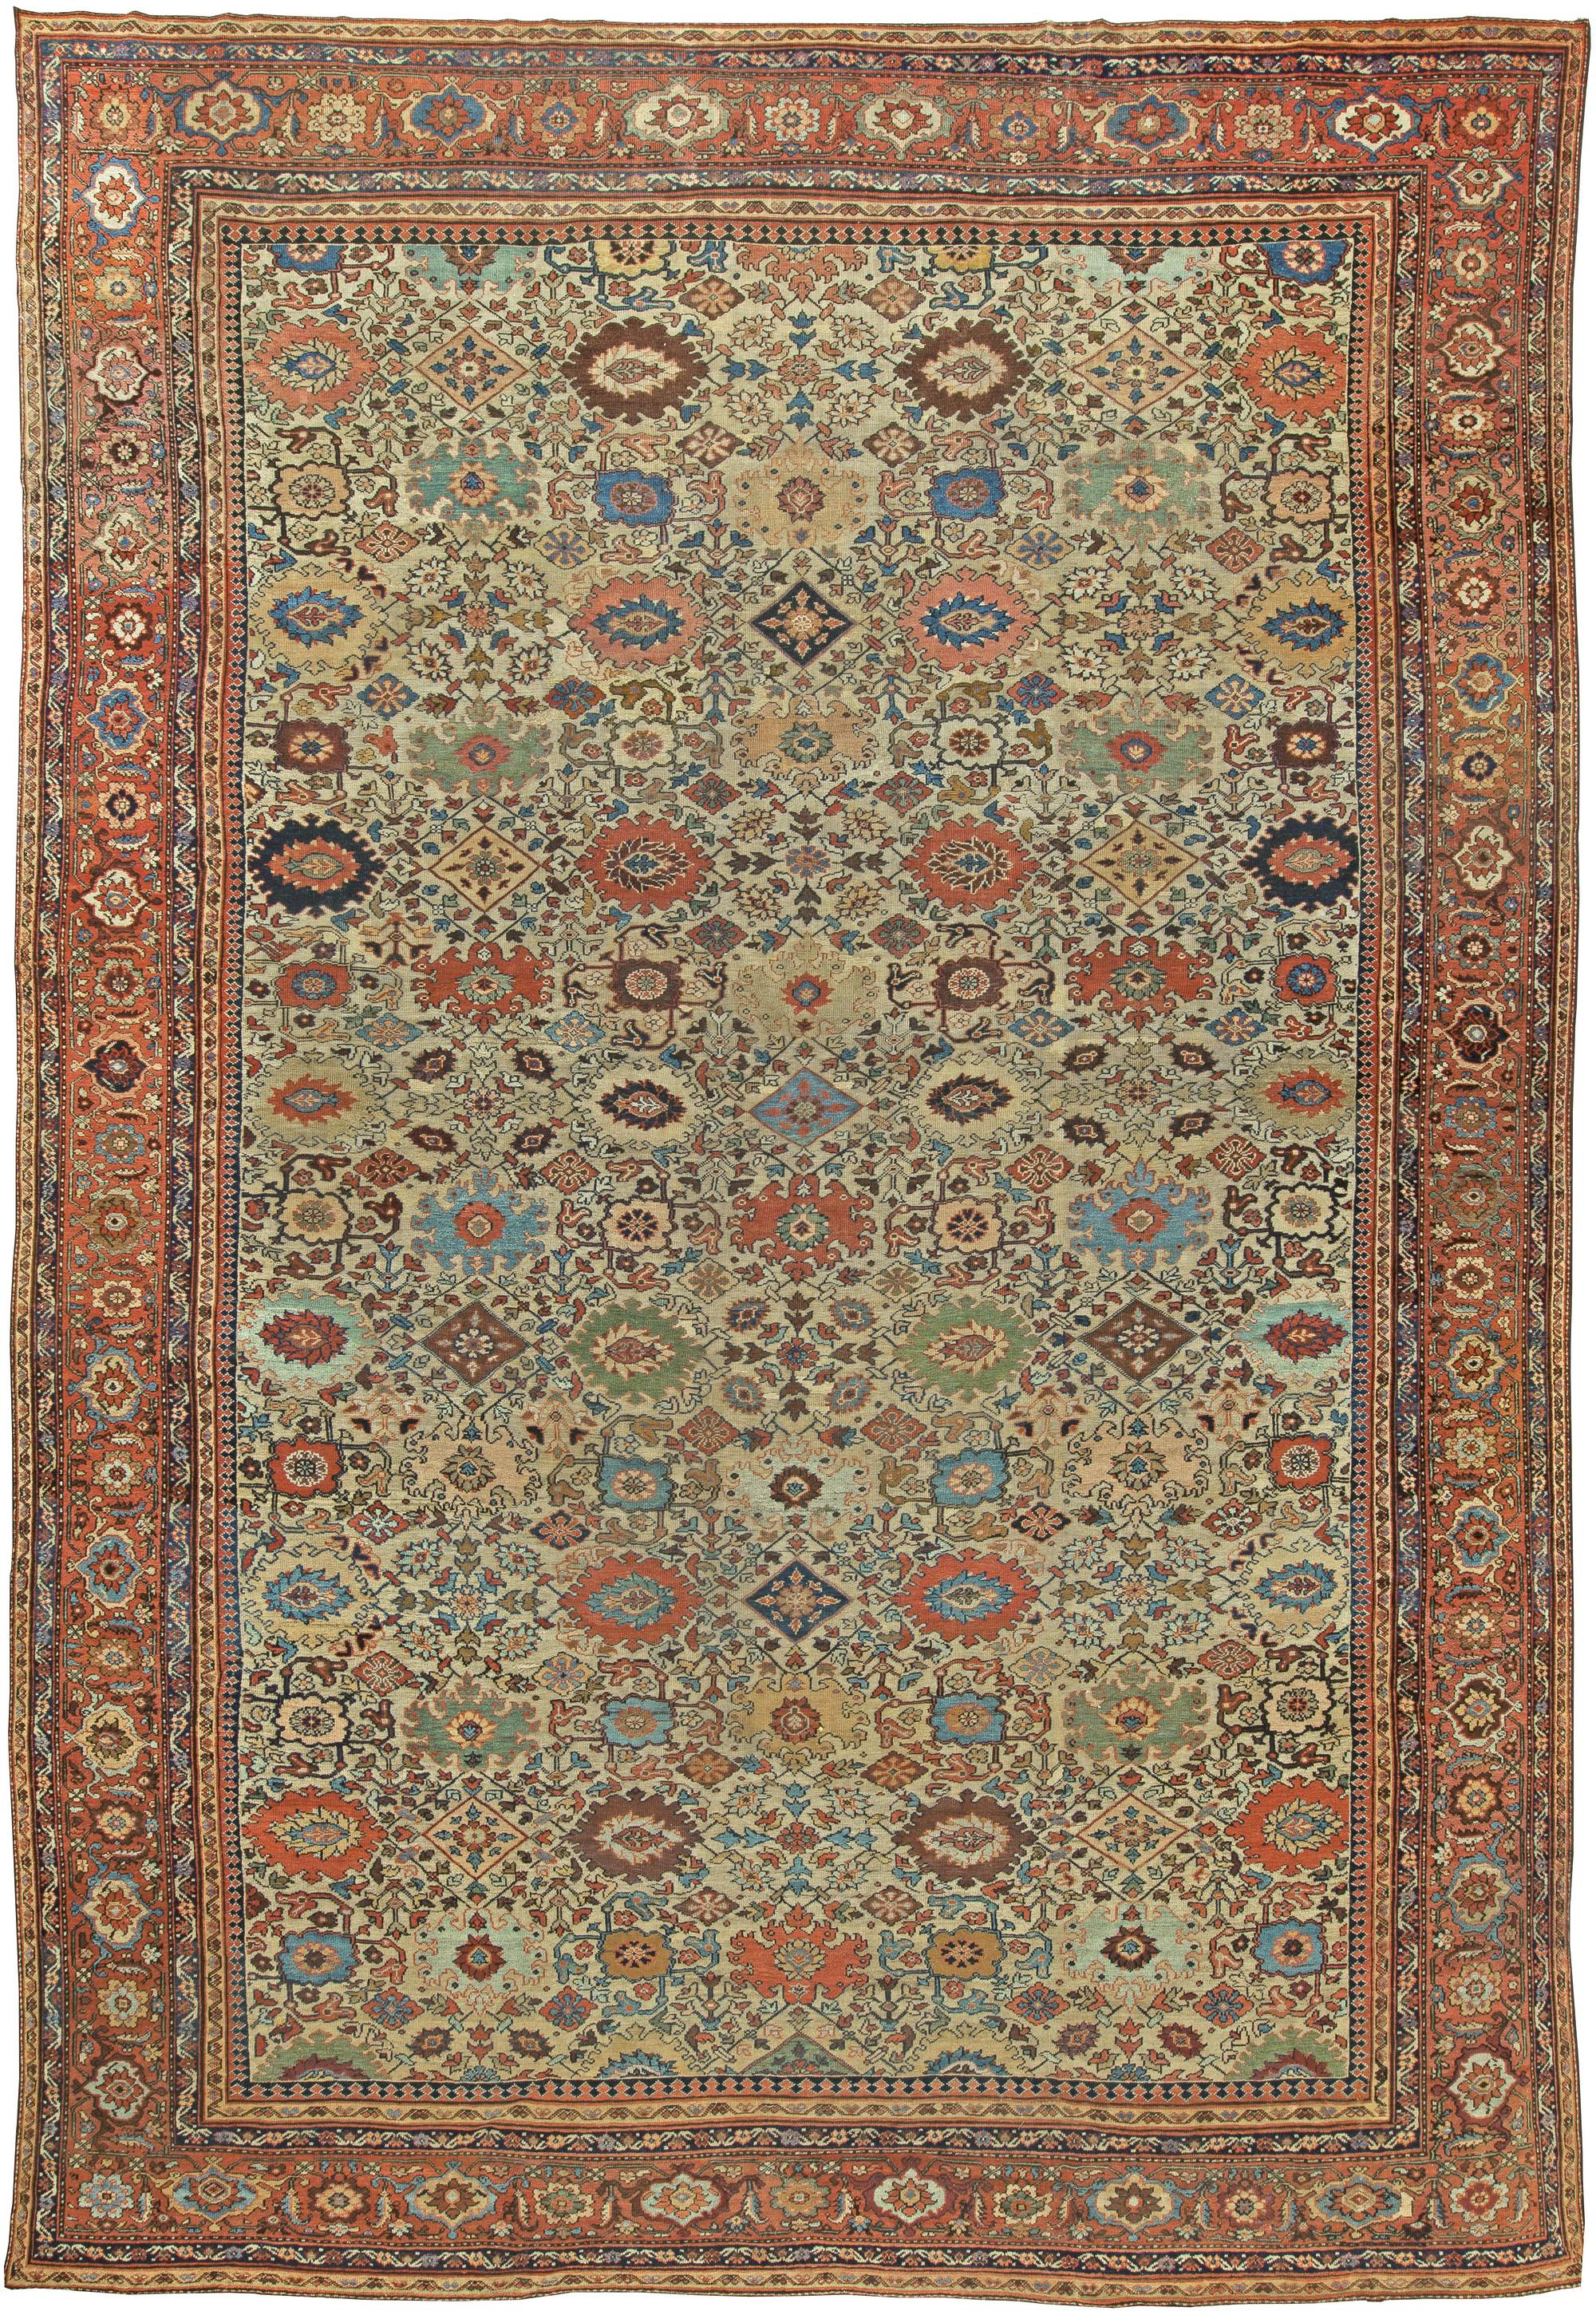 antique rugs: sultanabad antique rug uesbdfq WLSTLKW